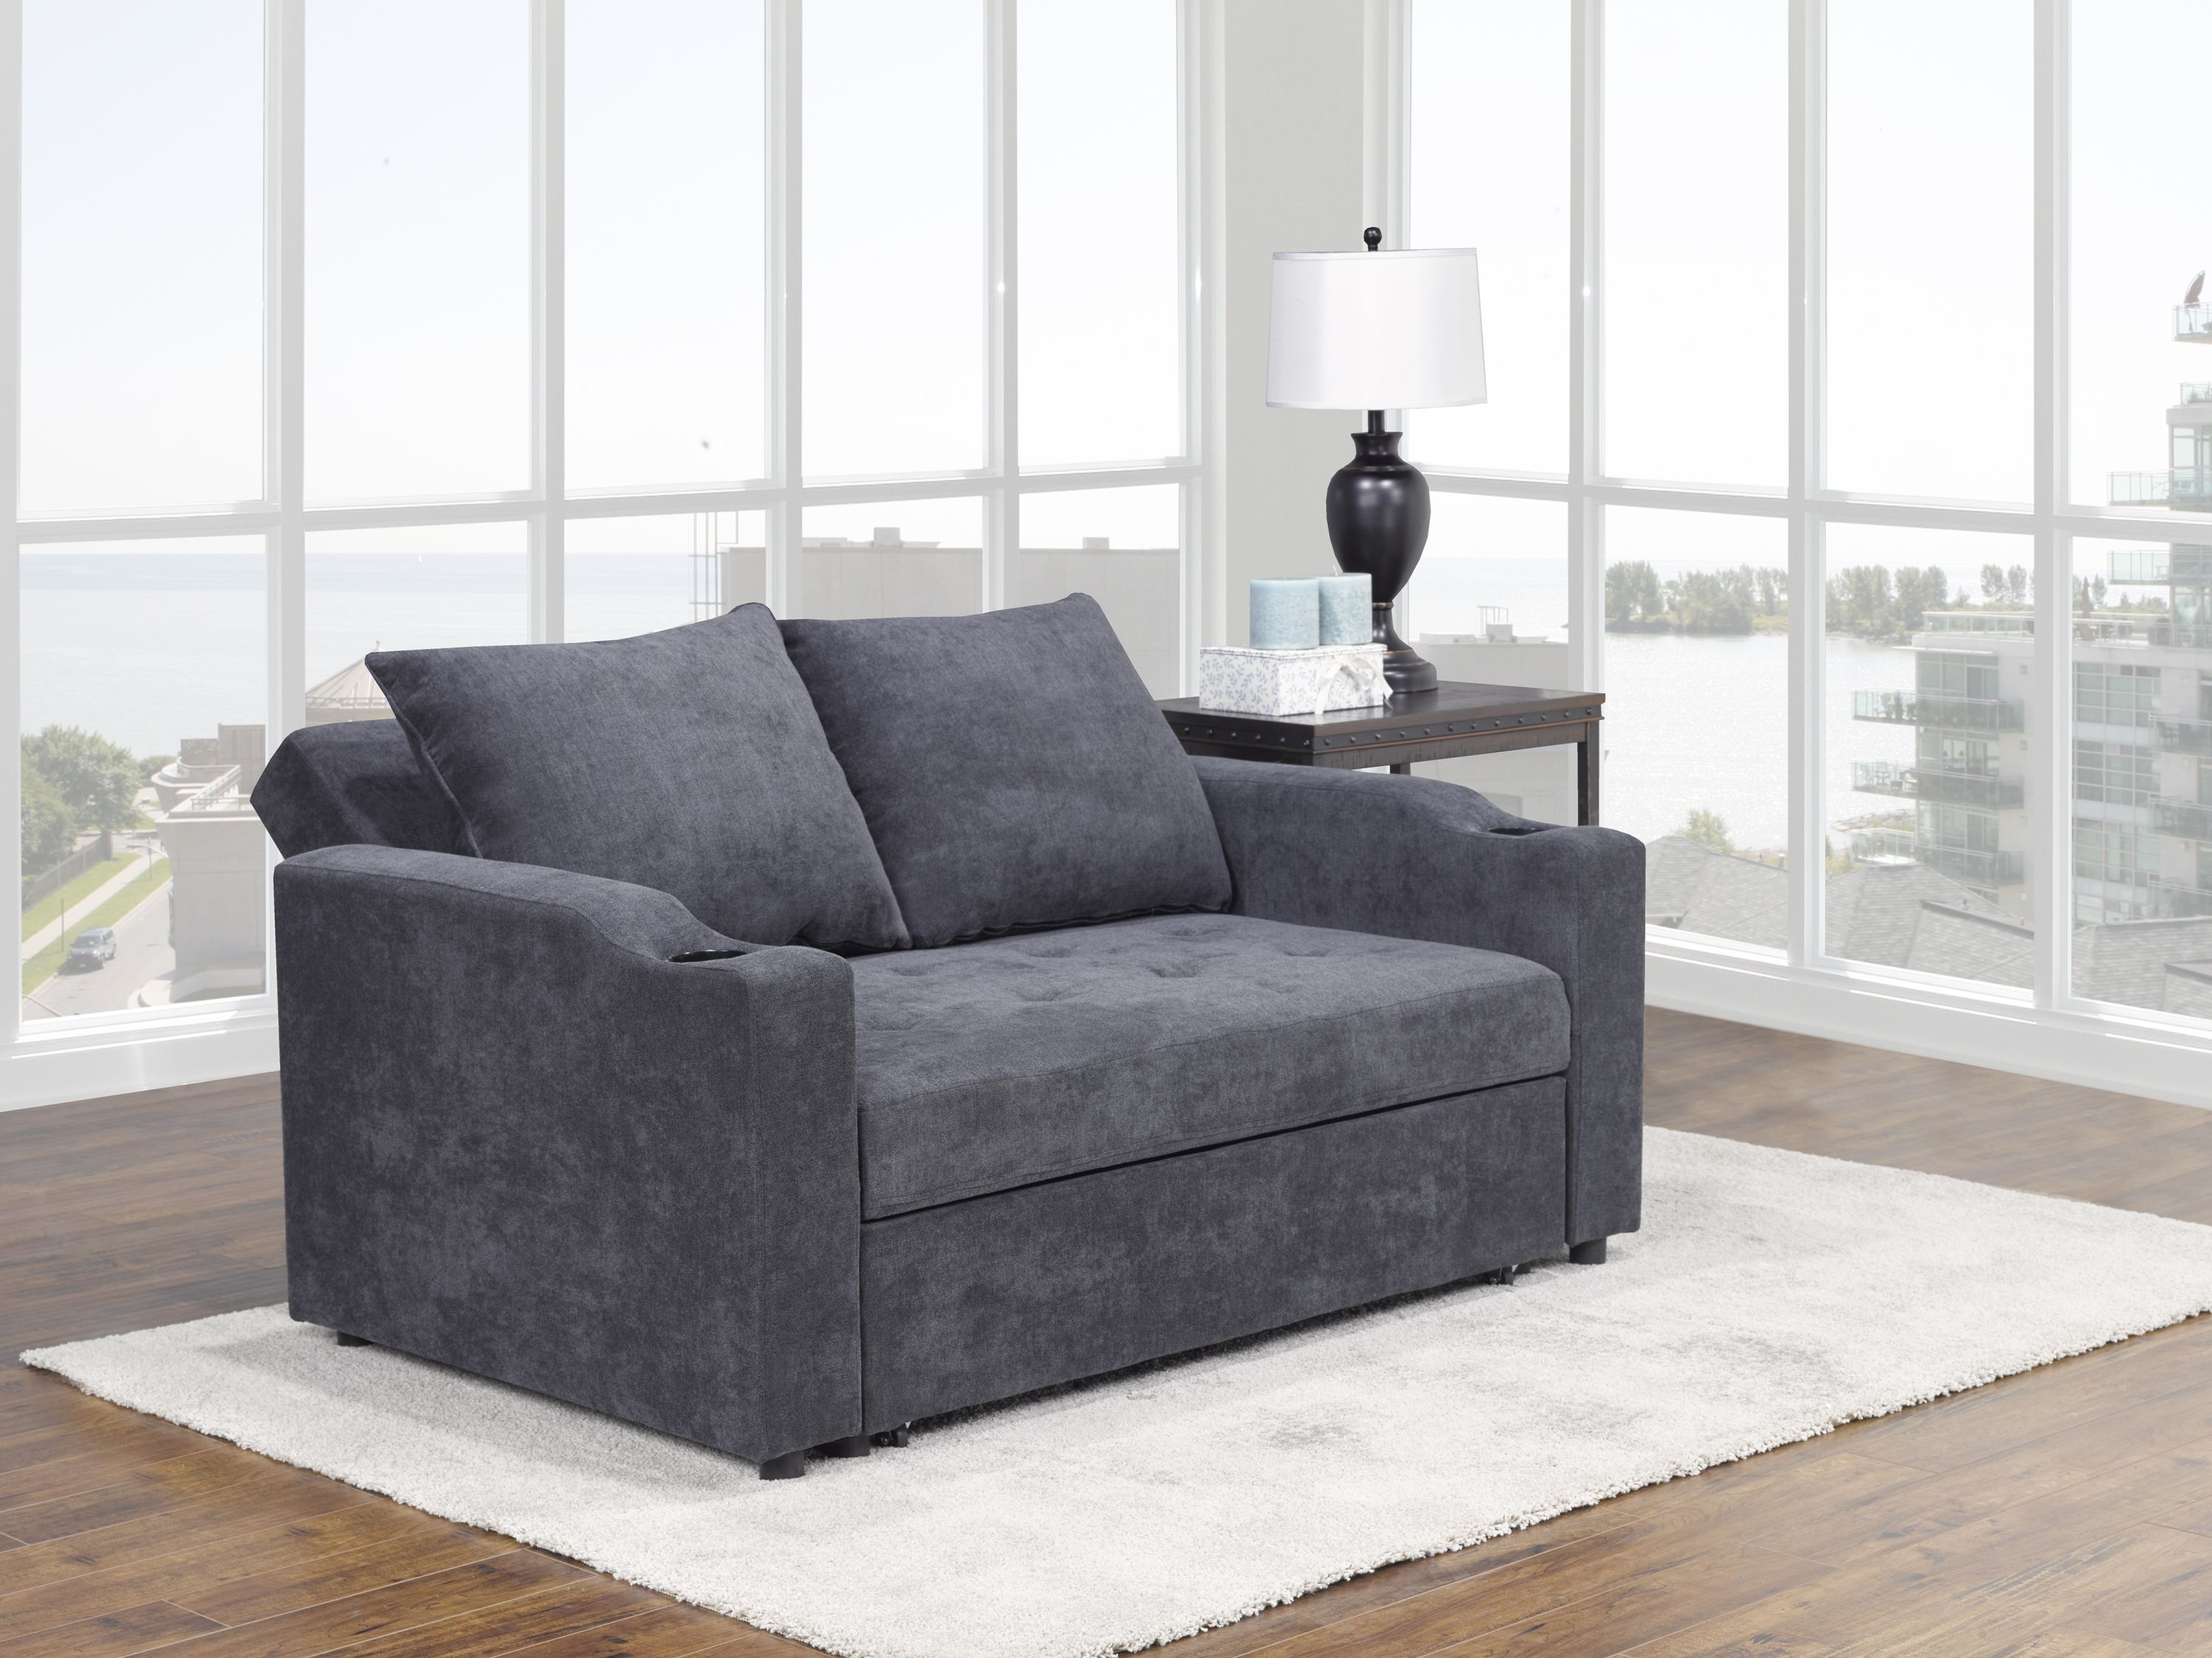 Brassex Fresno Sofa With Pull Out Bed Adj Back Grey Br S 2816dg 3a Modern Furniture Canada